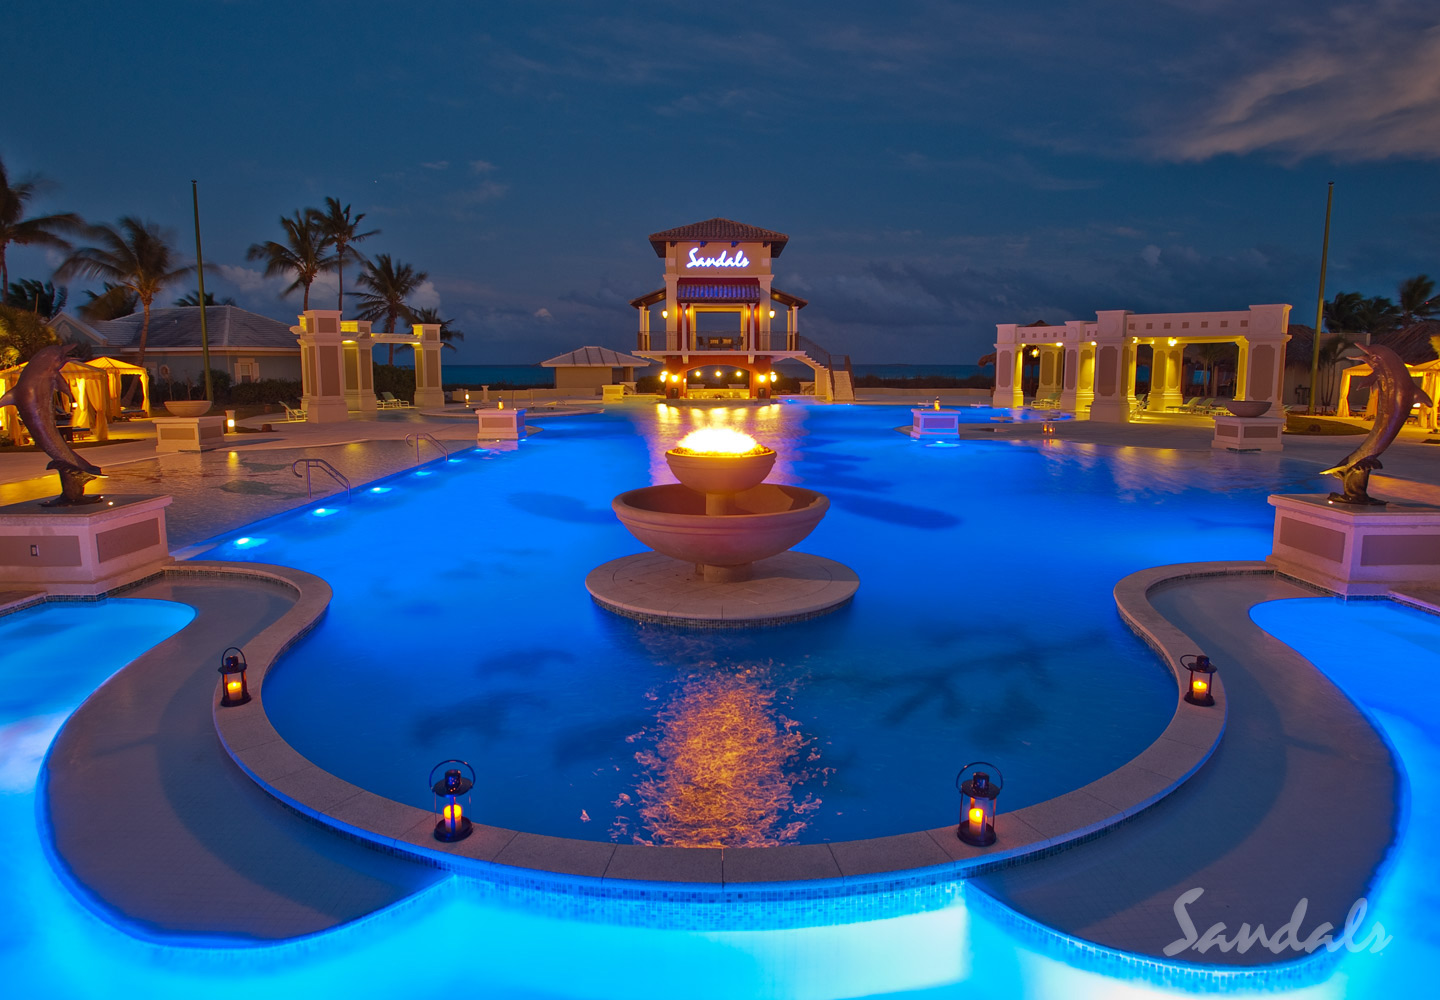 Travel Agency All-Inclusive Resort Sandals Emerald Bay 112